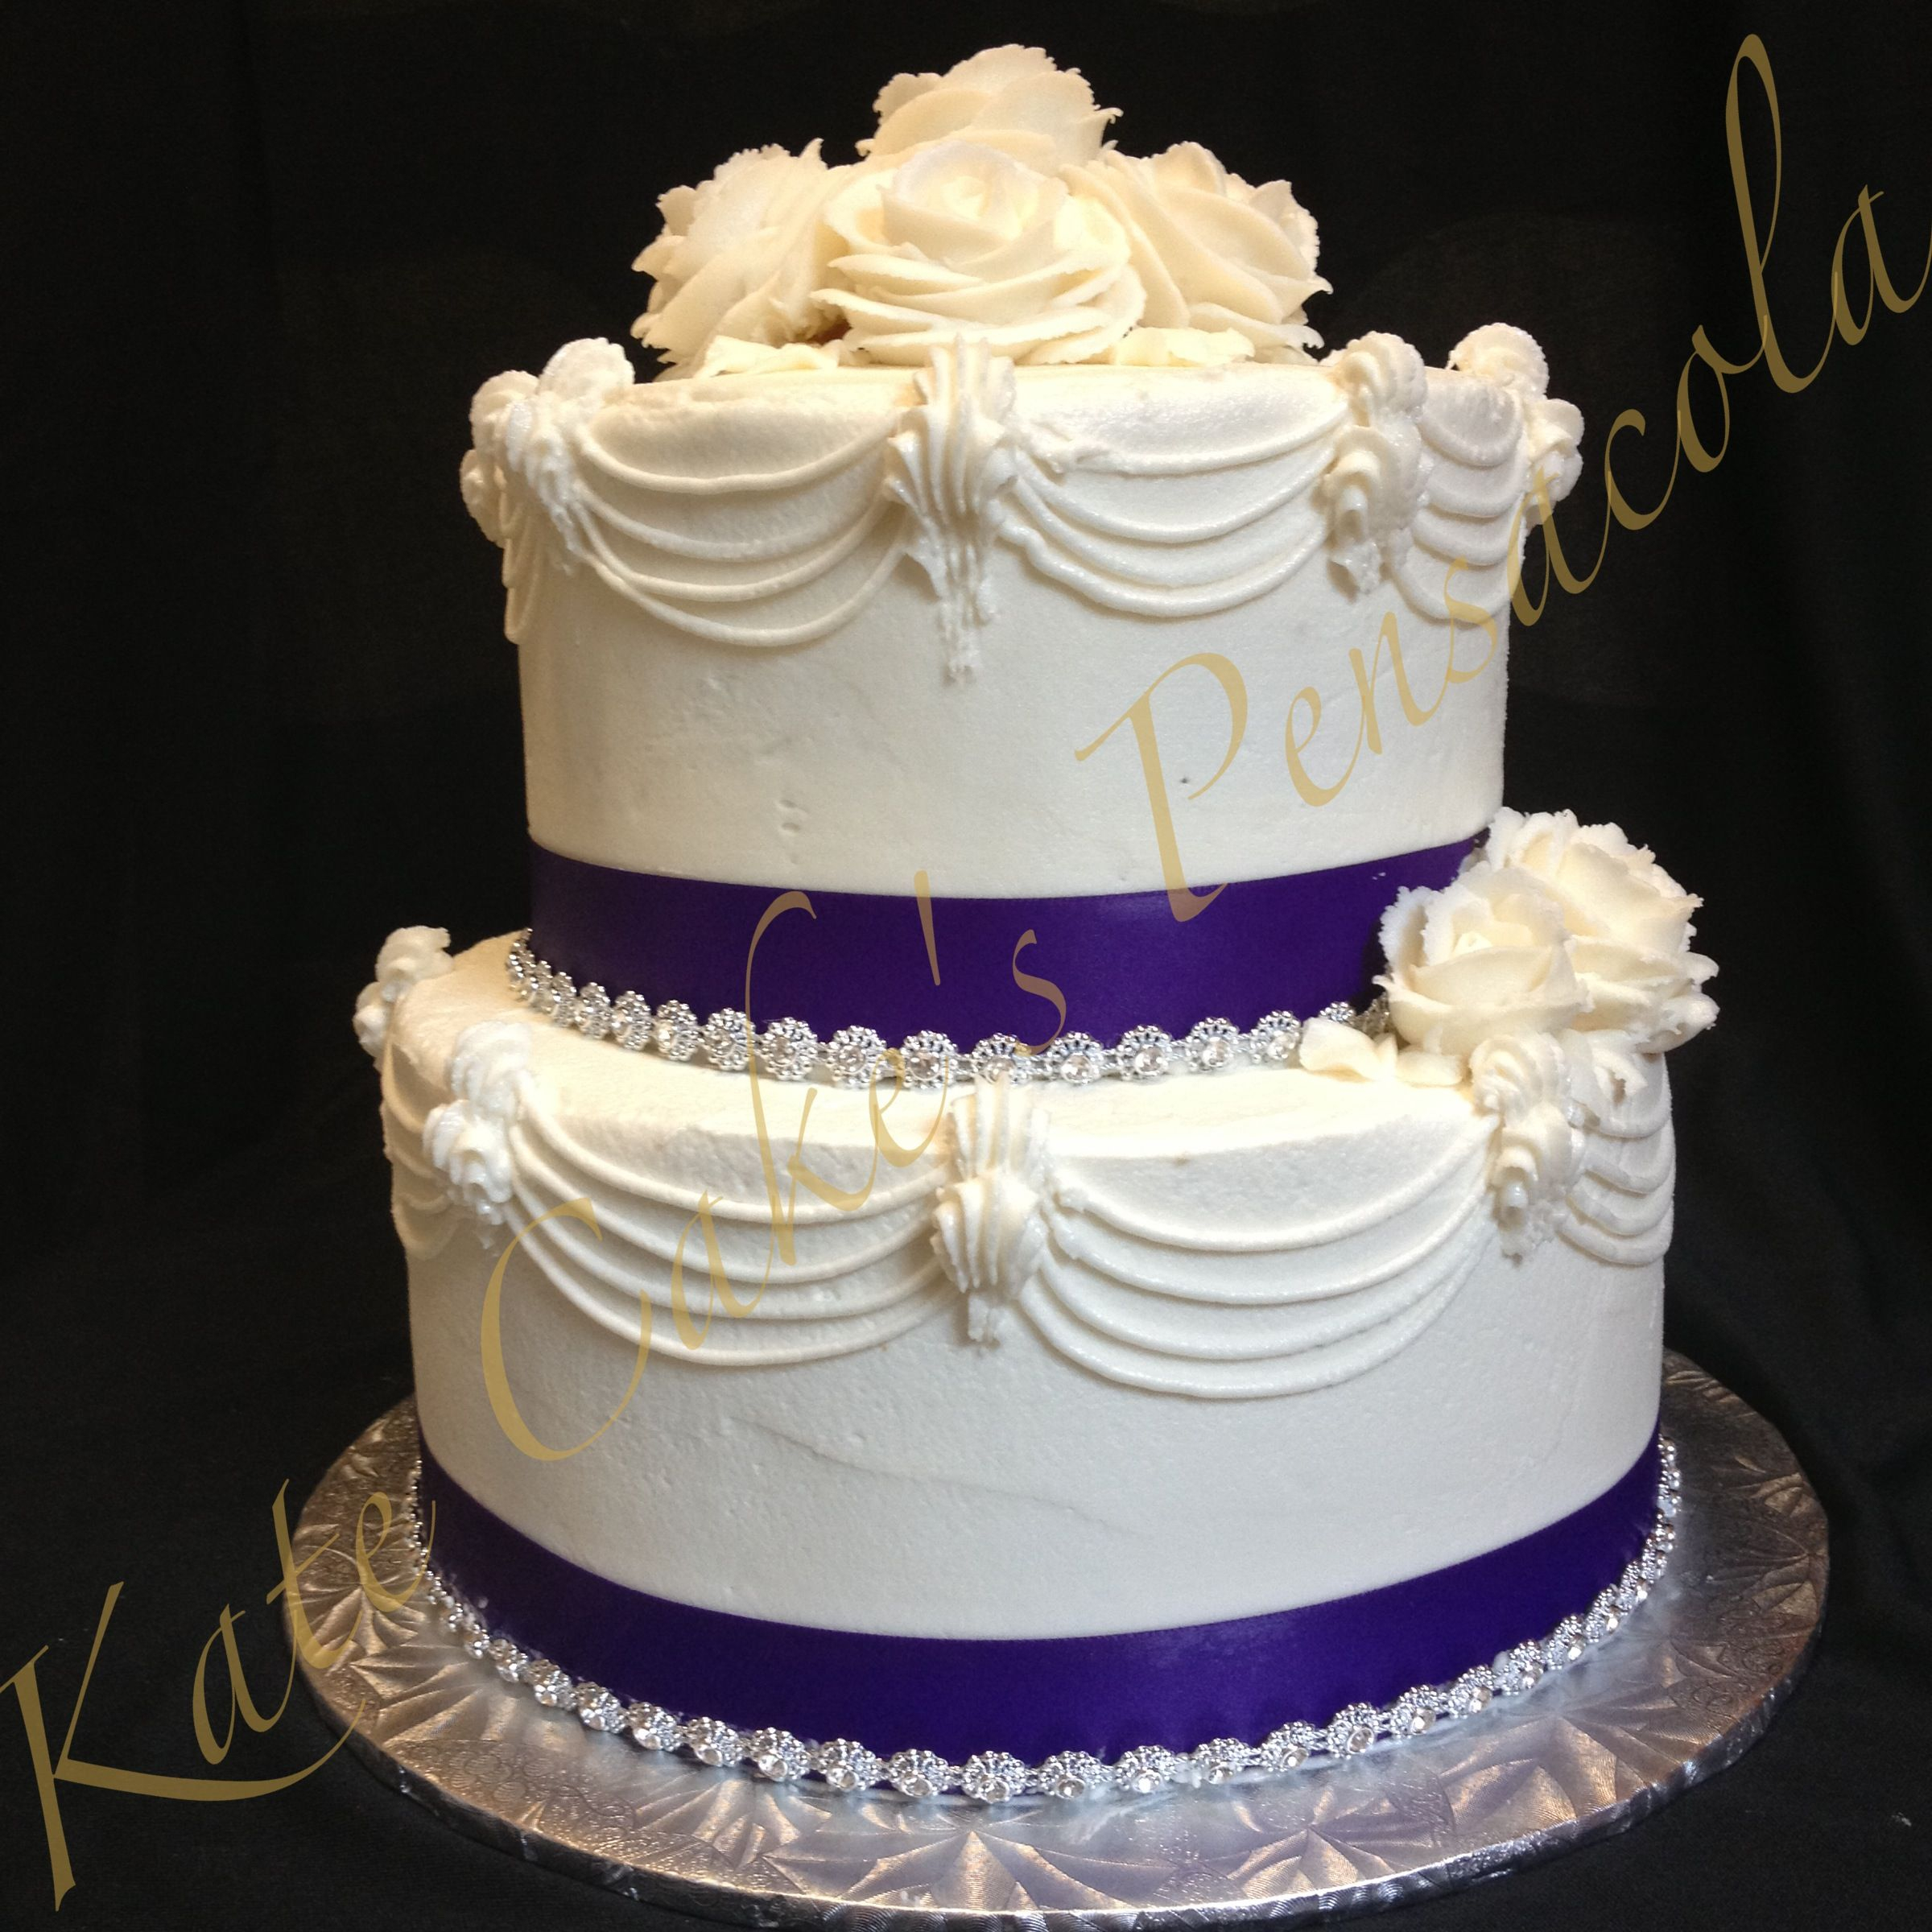 75Th Birthday Cake Two Tiered Birthday Cake 75th Birthday Cake With Bling Kates Cakes